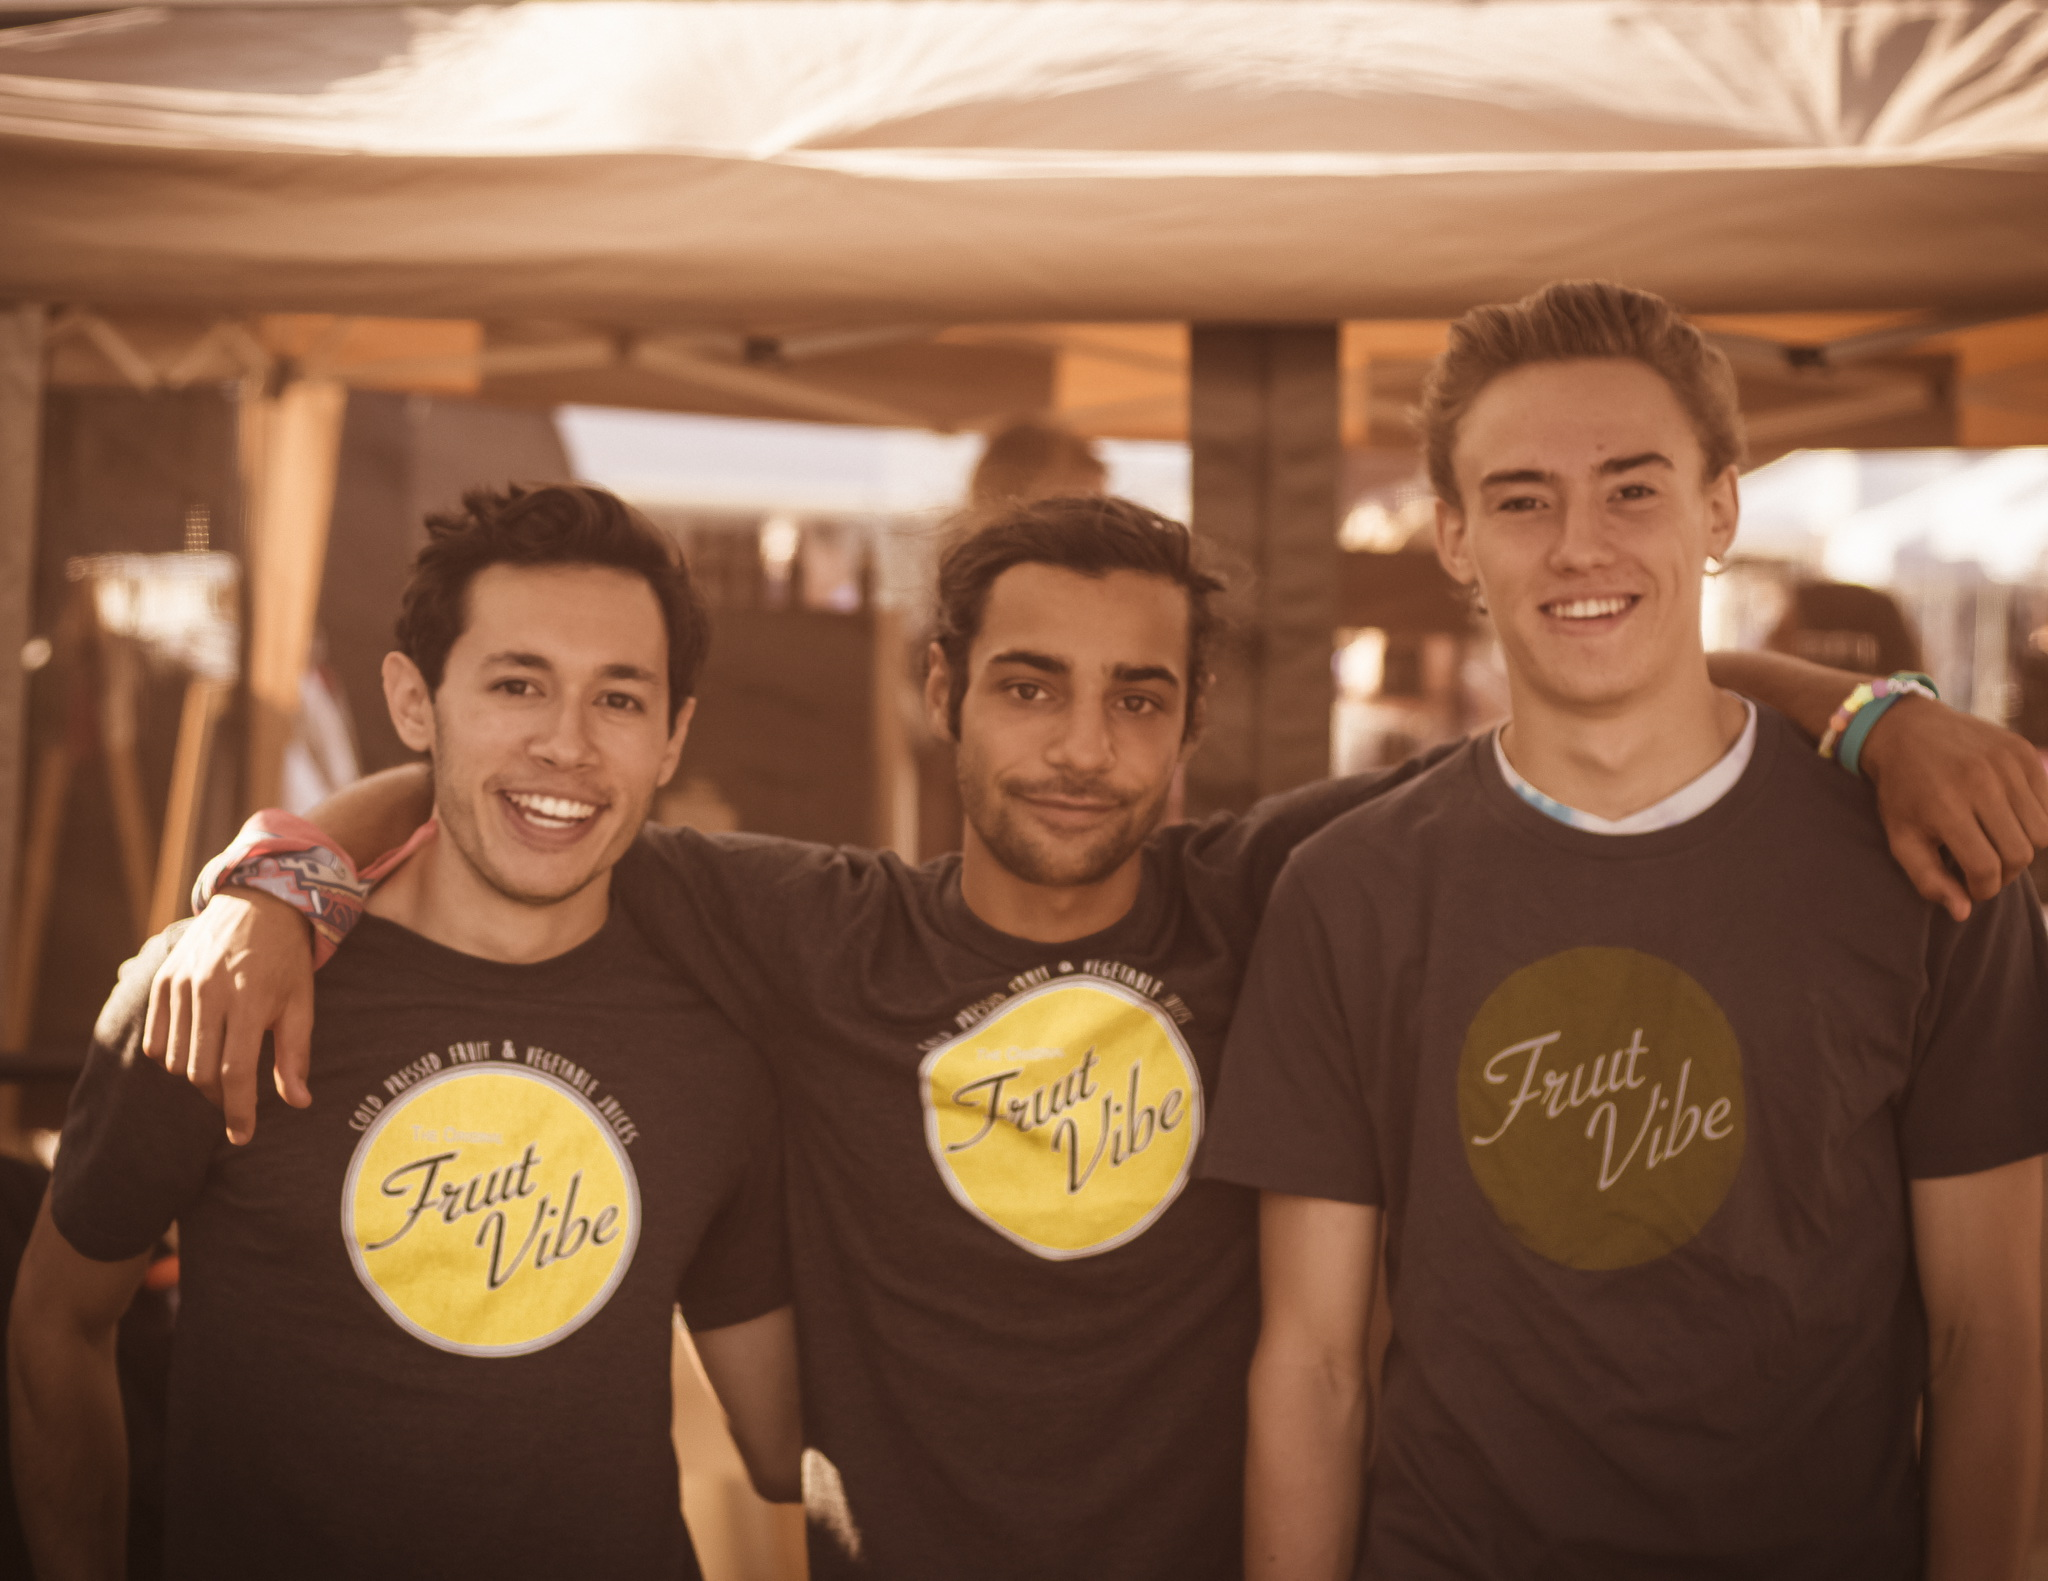 FruitVibe today! From left to right: Austin, Sam, & James